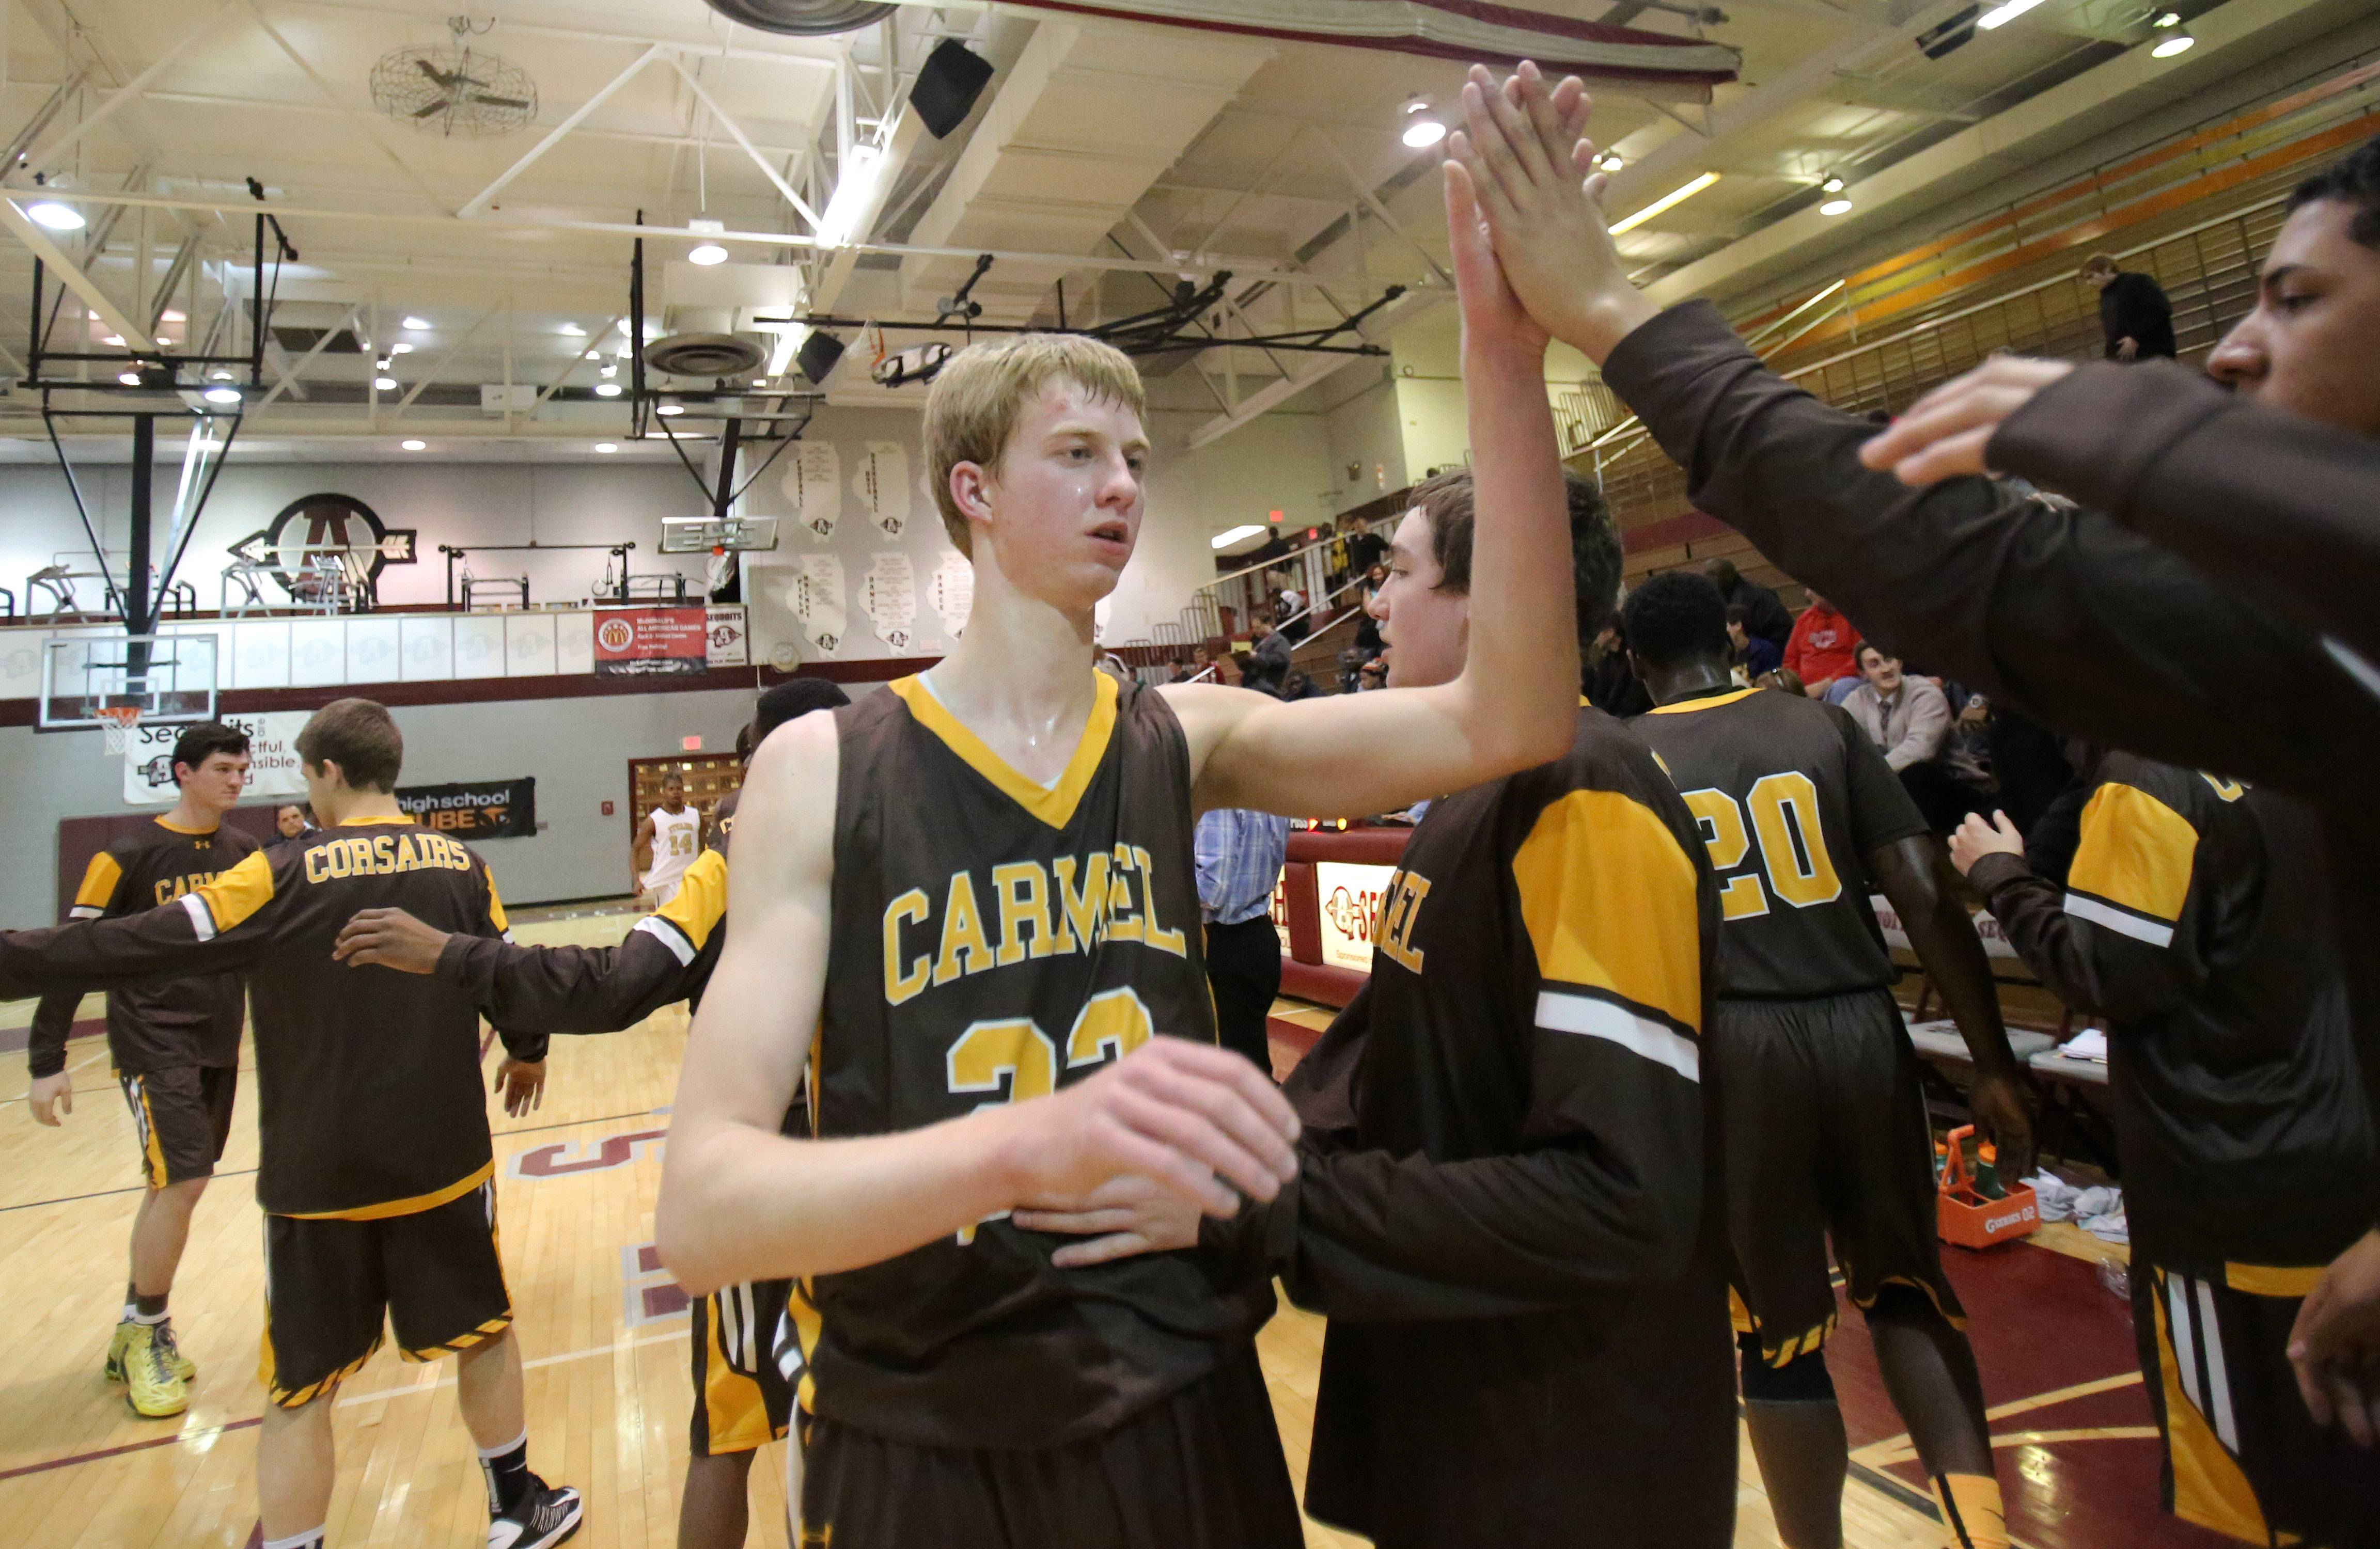 Carmel's Michael Barr celebrates after the Corsairs' win over Uplift in the Class 3A sectional semifinal at Antioch.